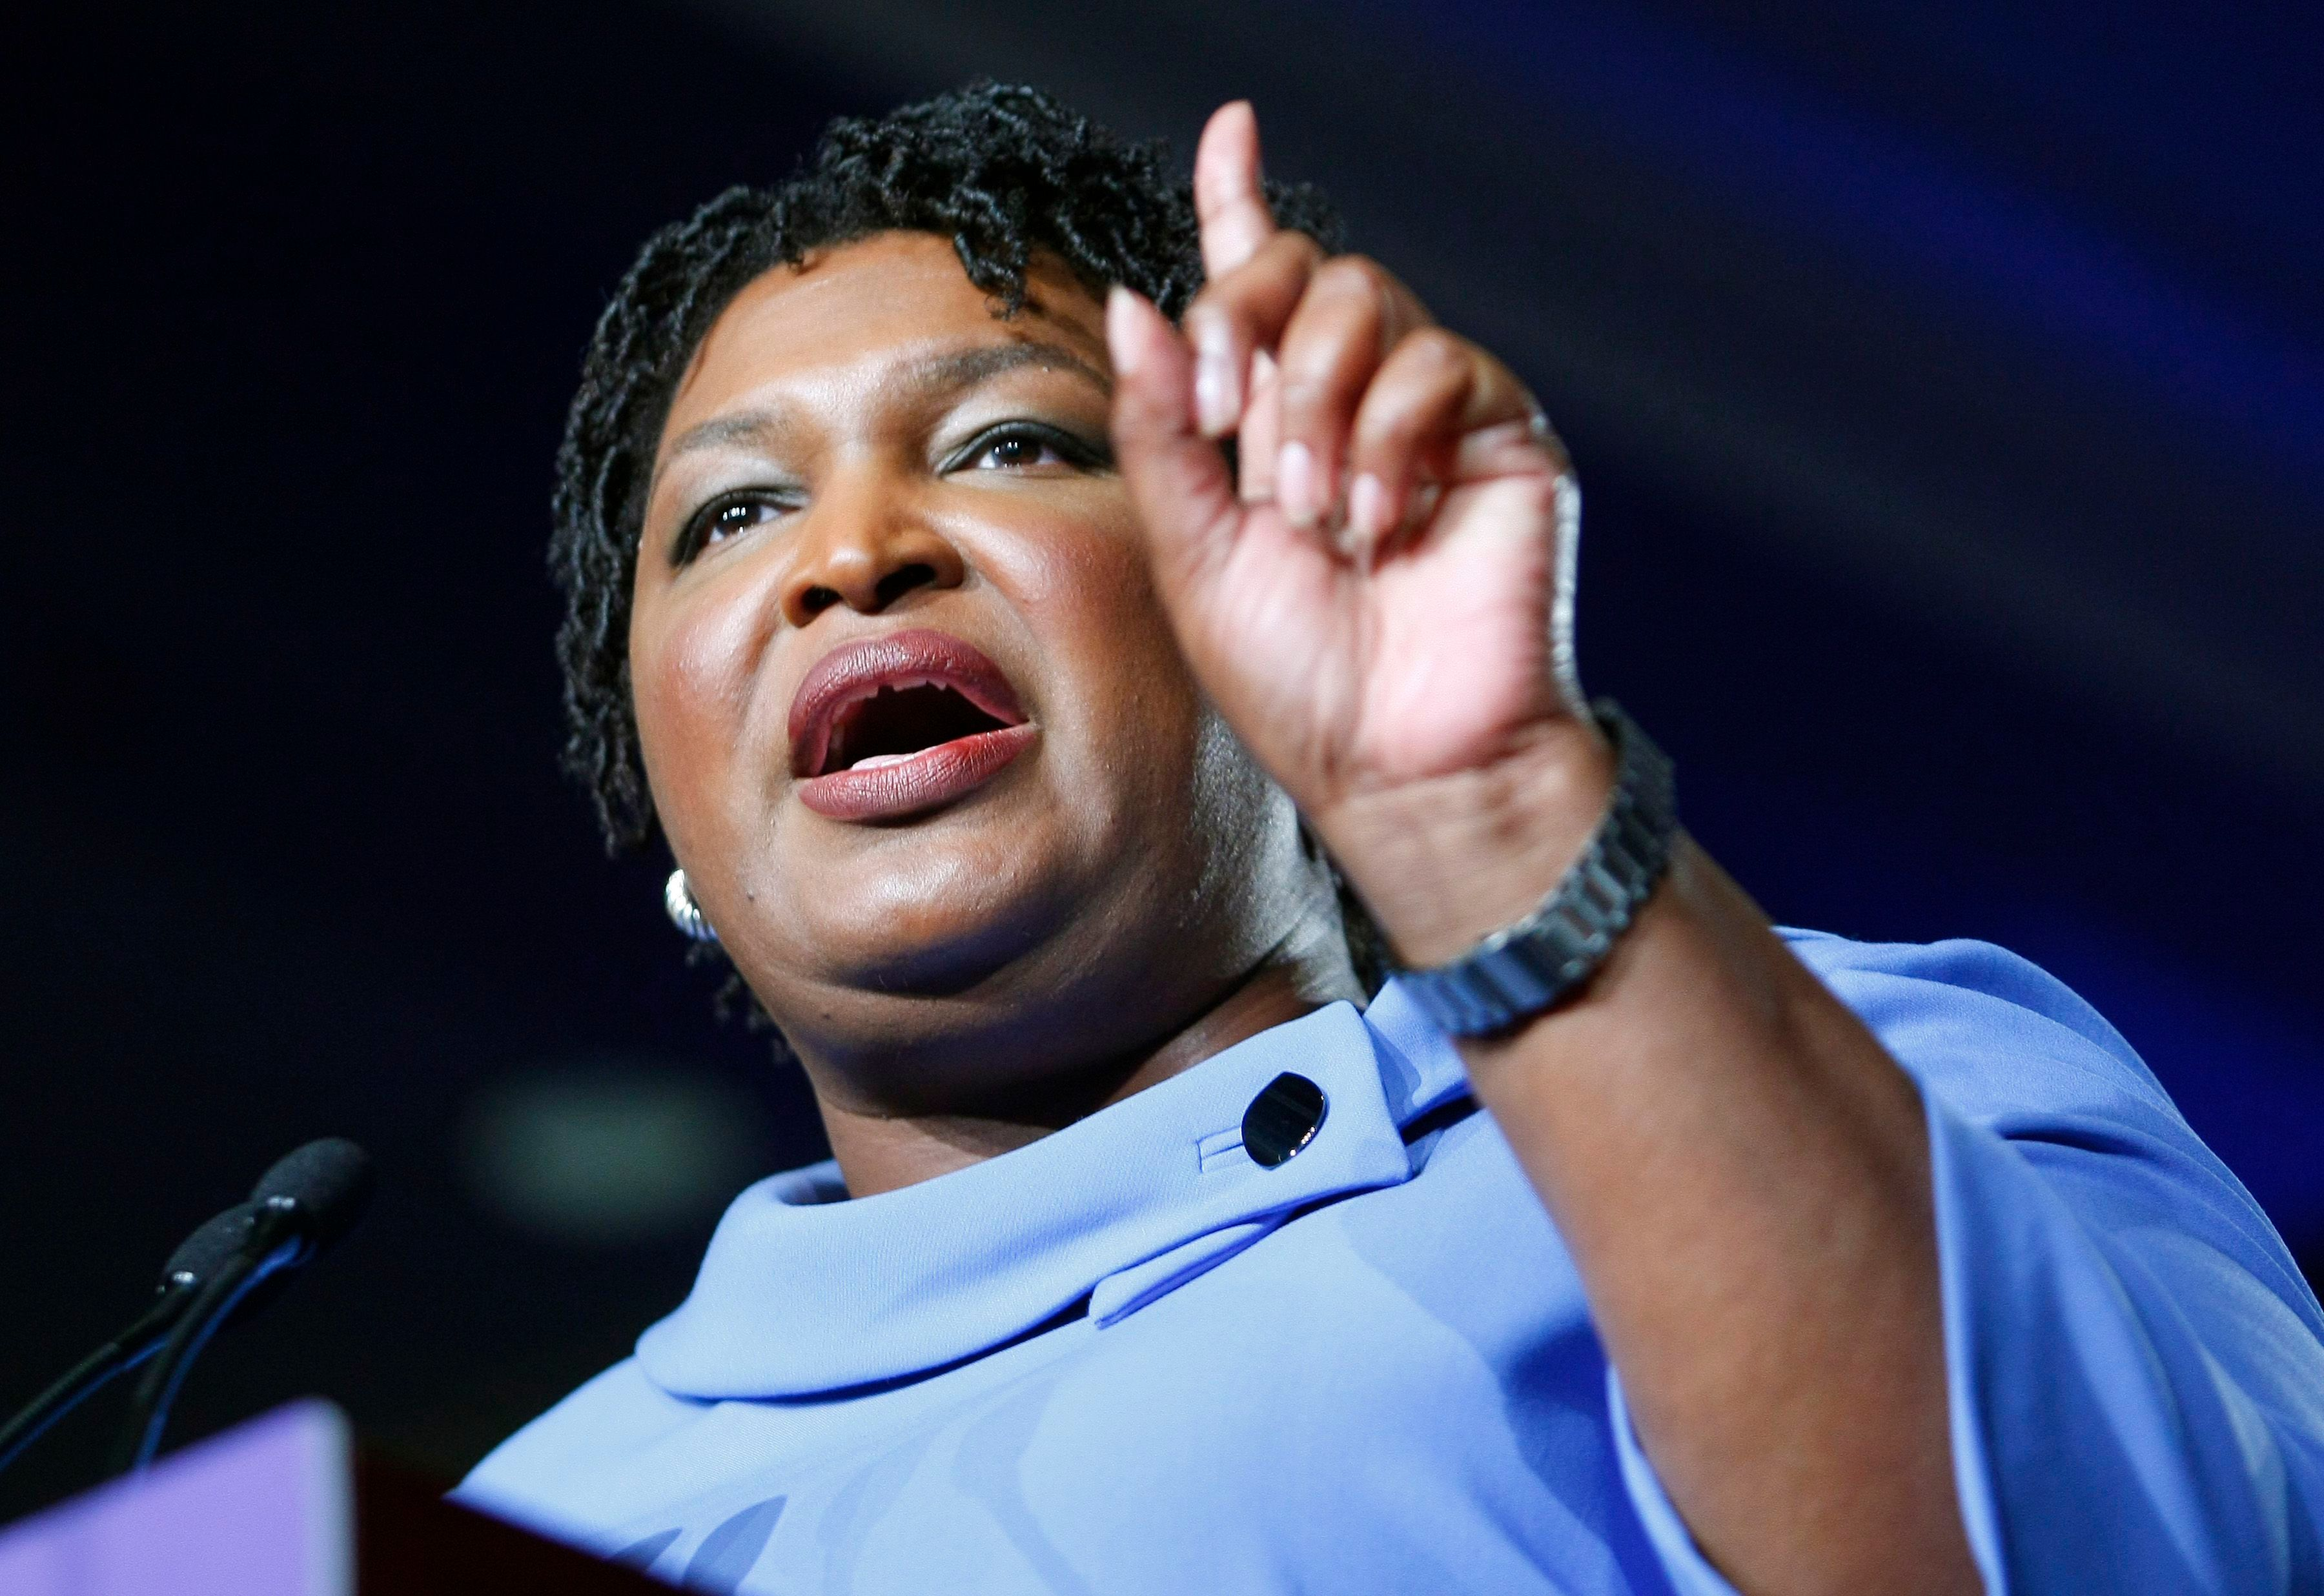 Stacey Abrams Offers Hollywood an Alternative to Boycotting Georgia Over Heartbeat Bill